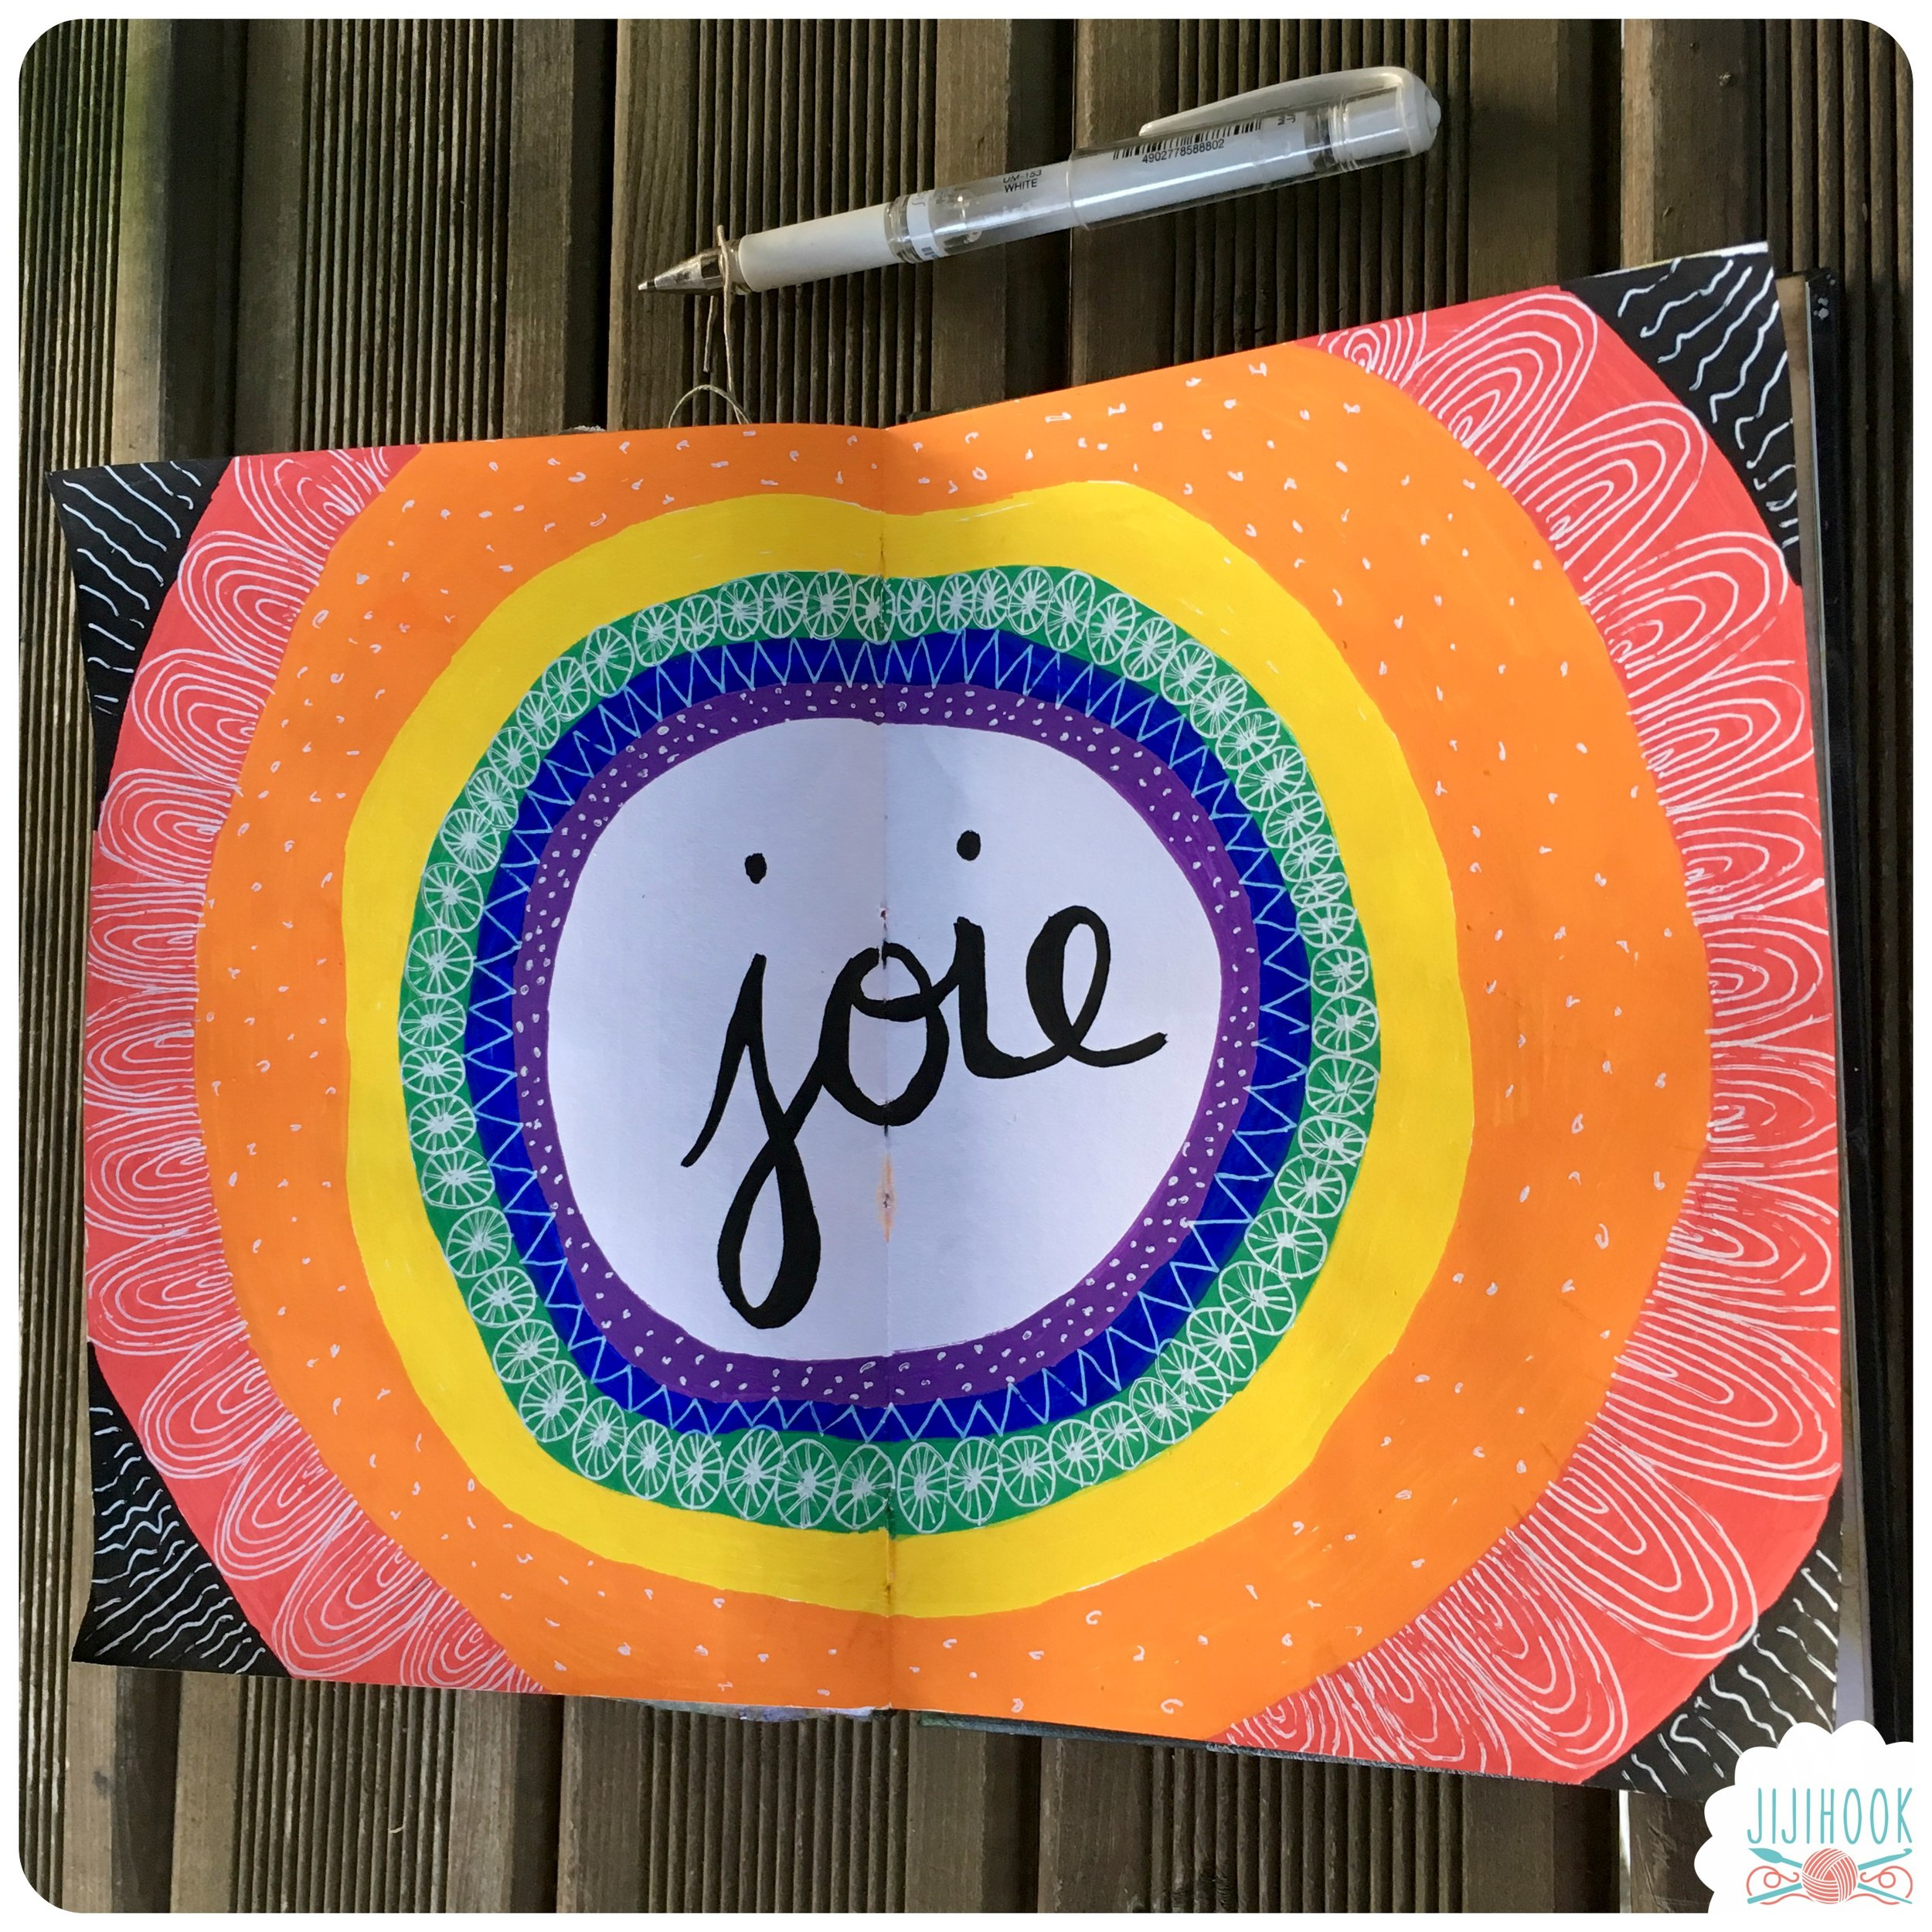 Joy + Sanity is Success - This beautiful picture is from one of my gorgeous clients Gisele.